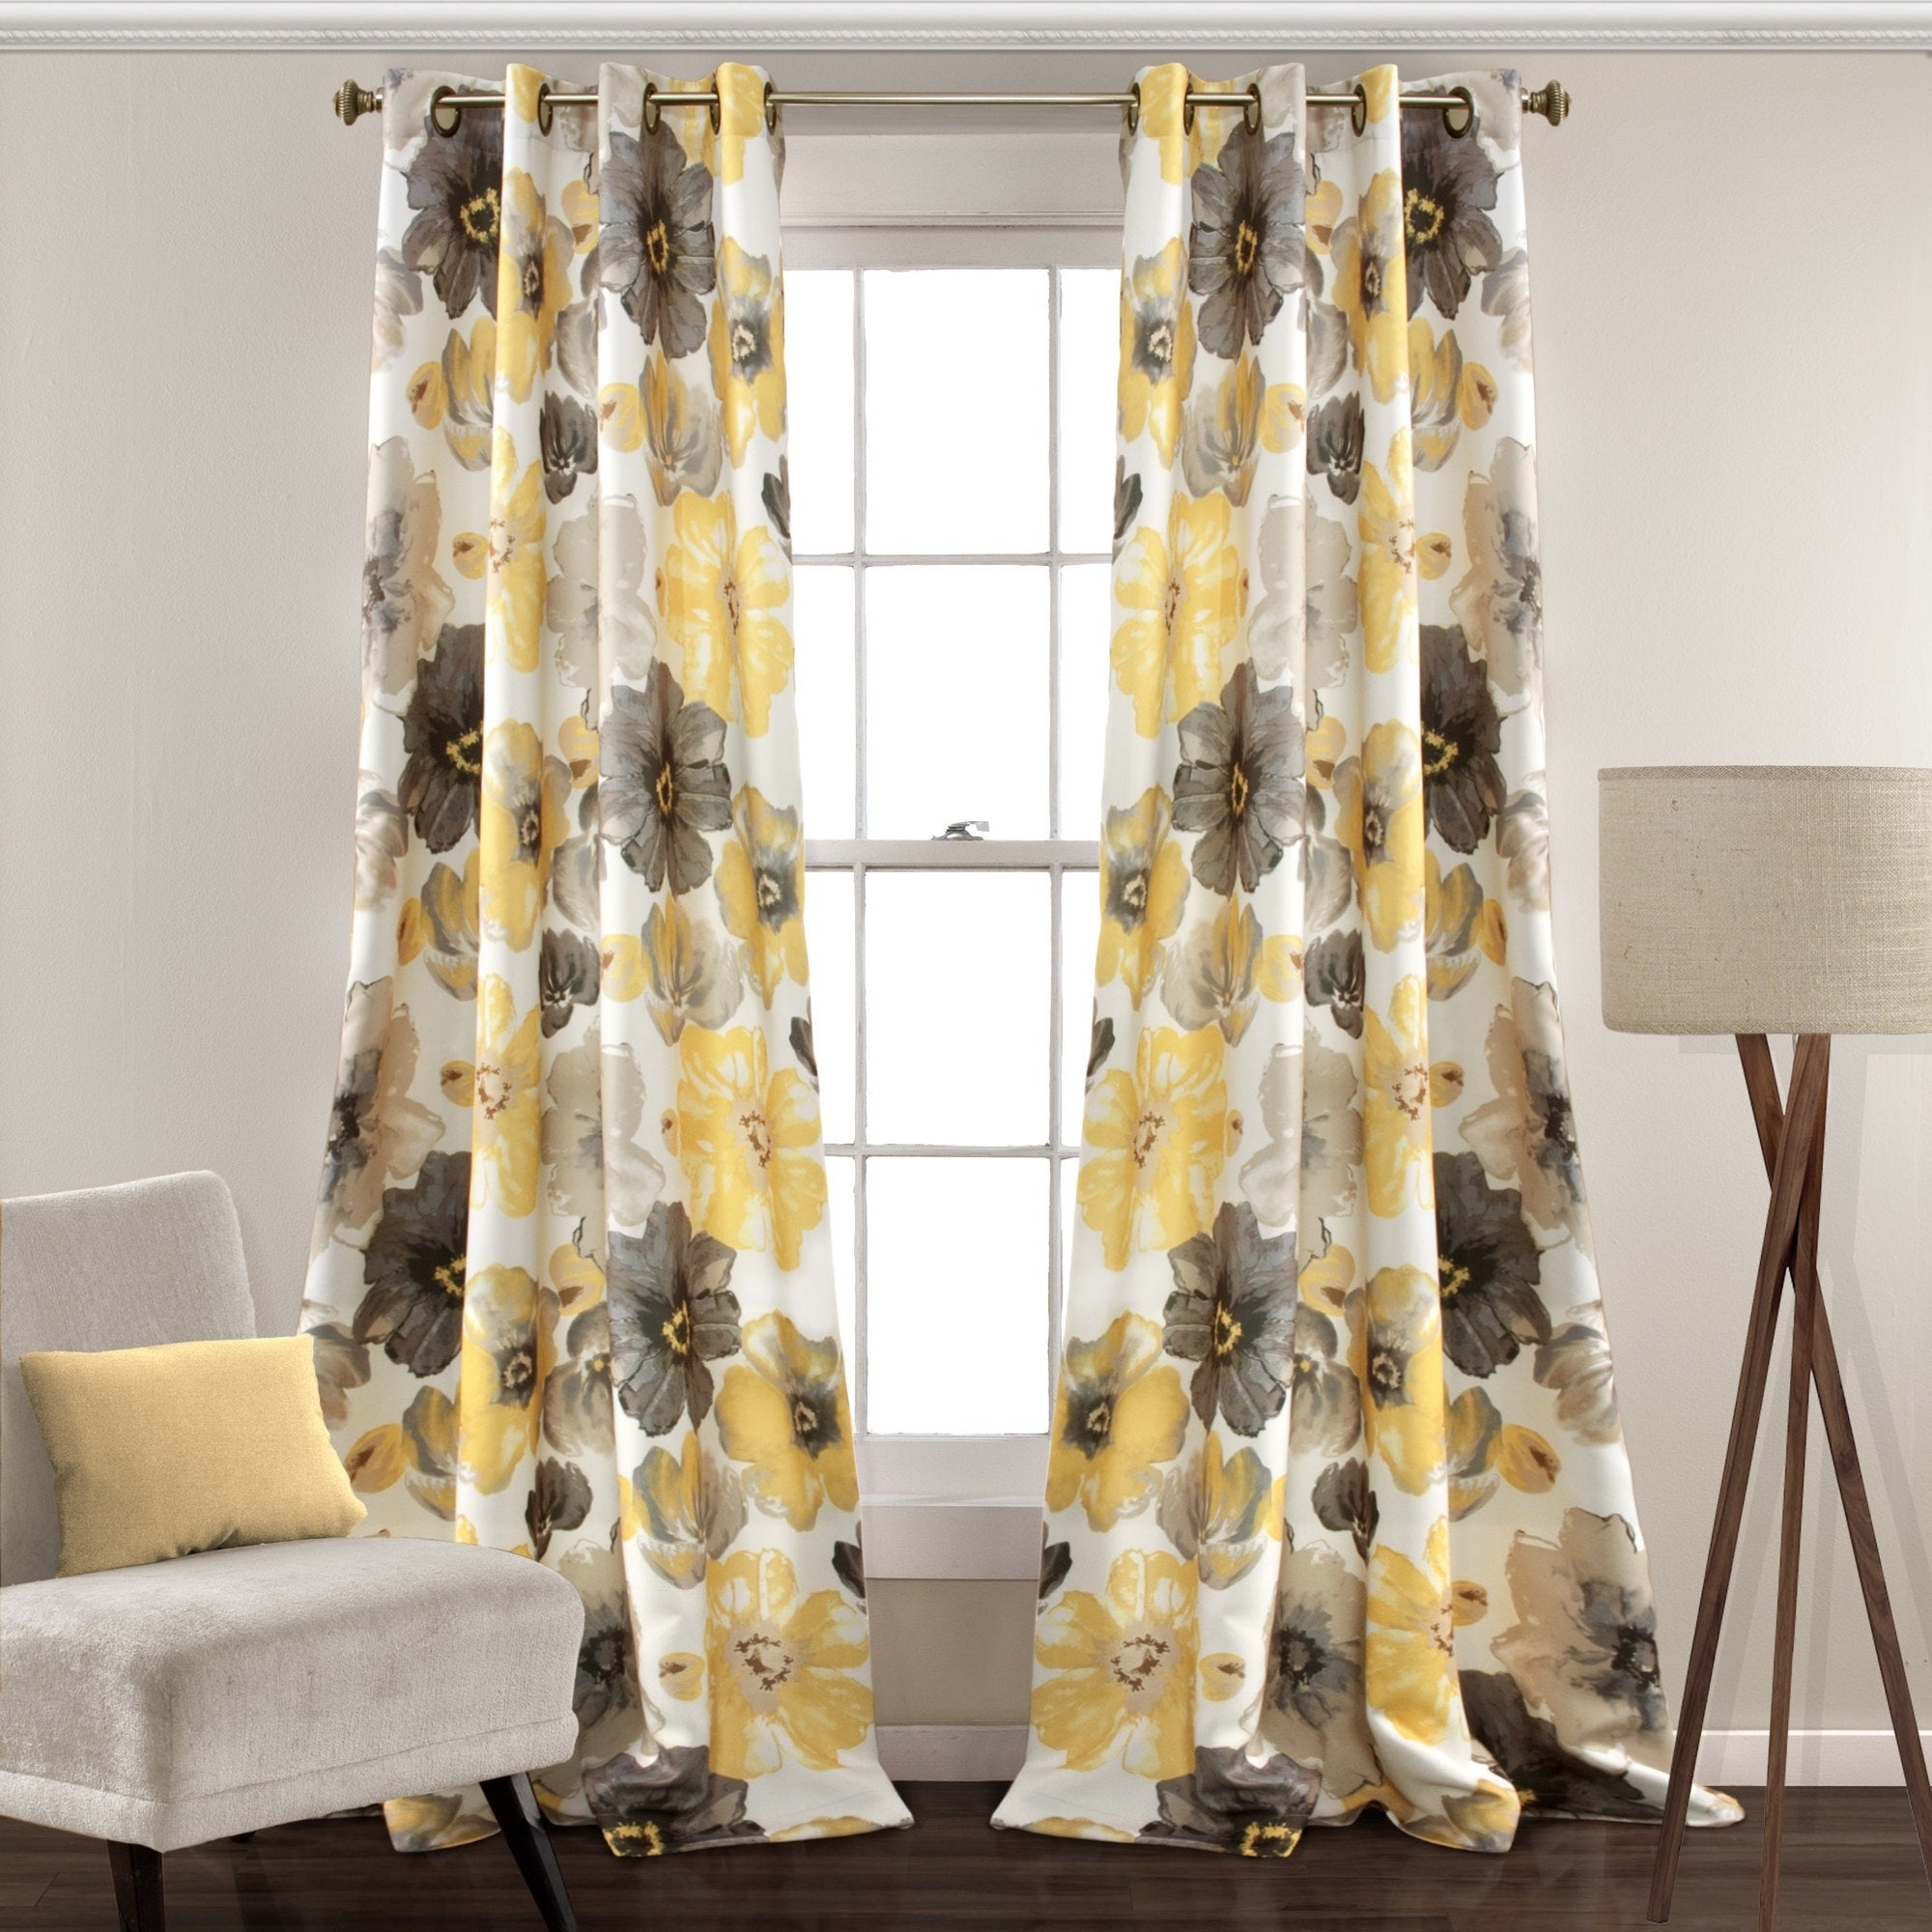 Details About Lush Decor Leah Room Darkening Curtain Panel Pair In Weeping Flowers Room Darkening Curtain Panel Pairs (View 9 of 30)